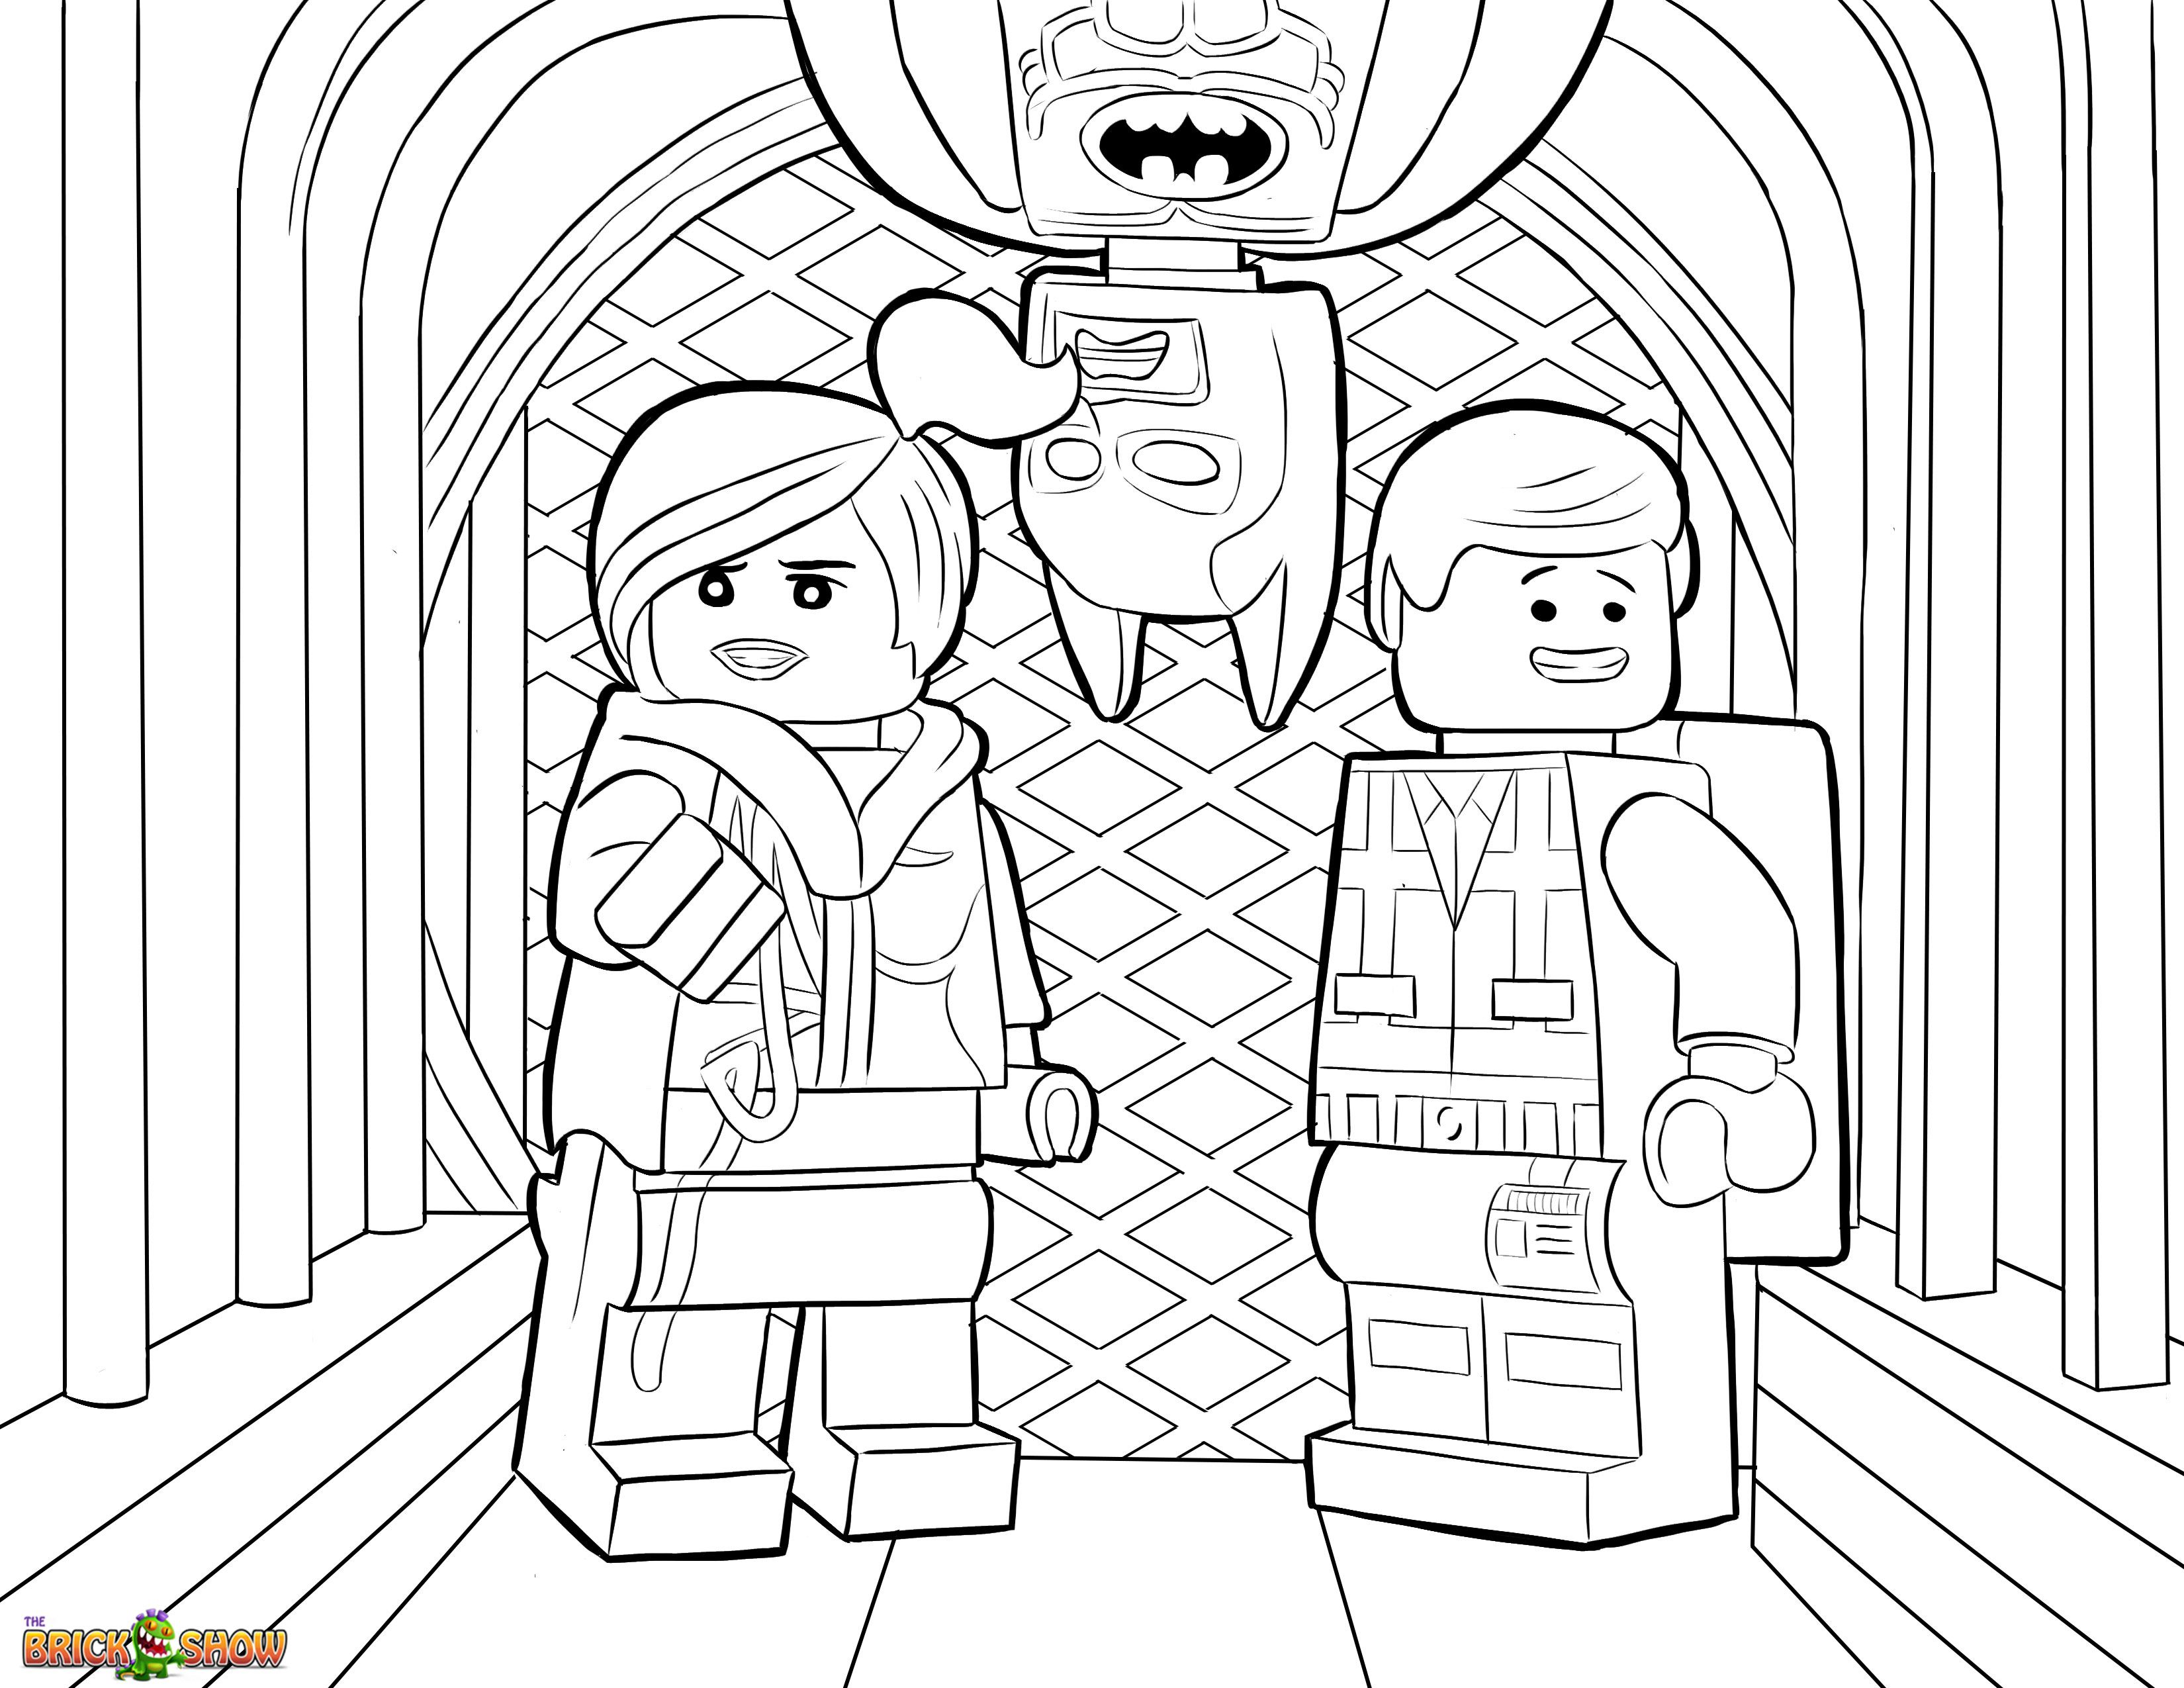 lego movie emmet coloring page the lego movie coloring page lego wyldstyle emmet page emmet coloring lego movie